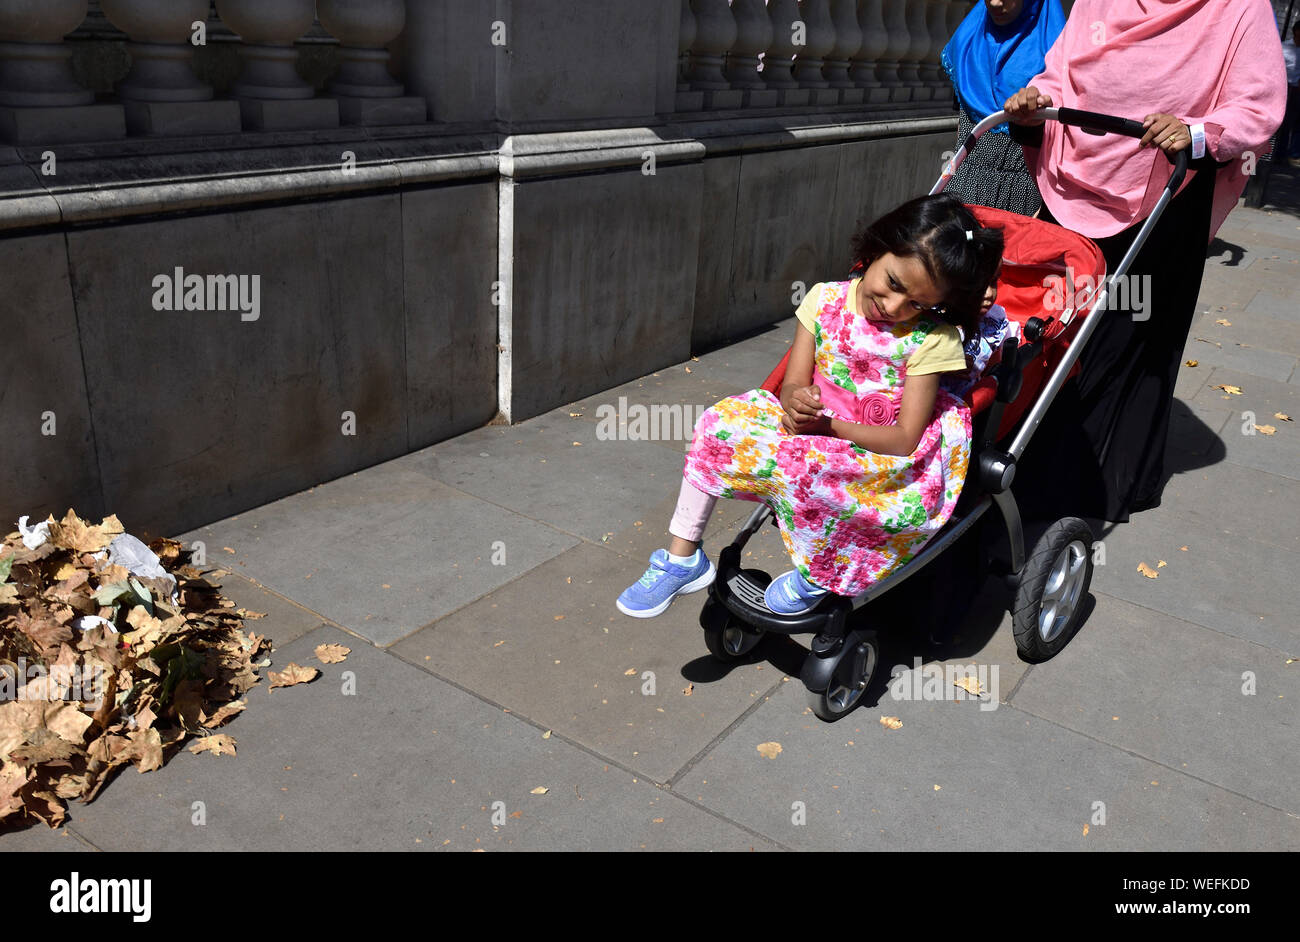 London, England, UK. Muslim faily - small girl in a pushchair Stock Photo